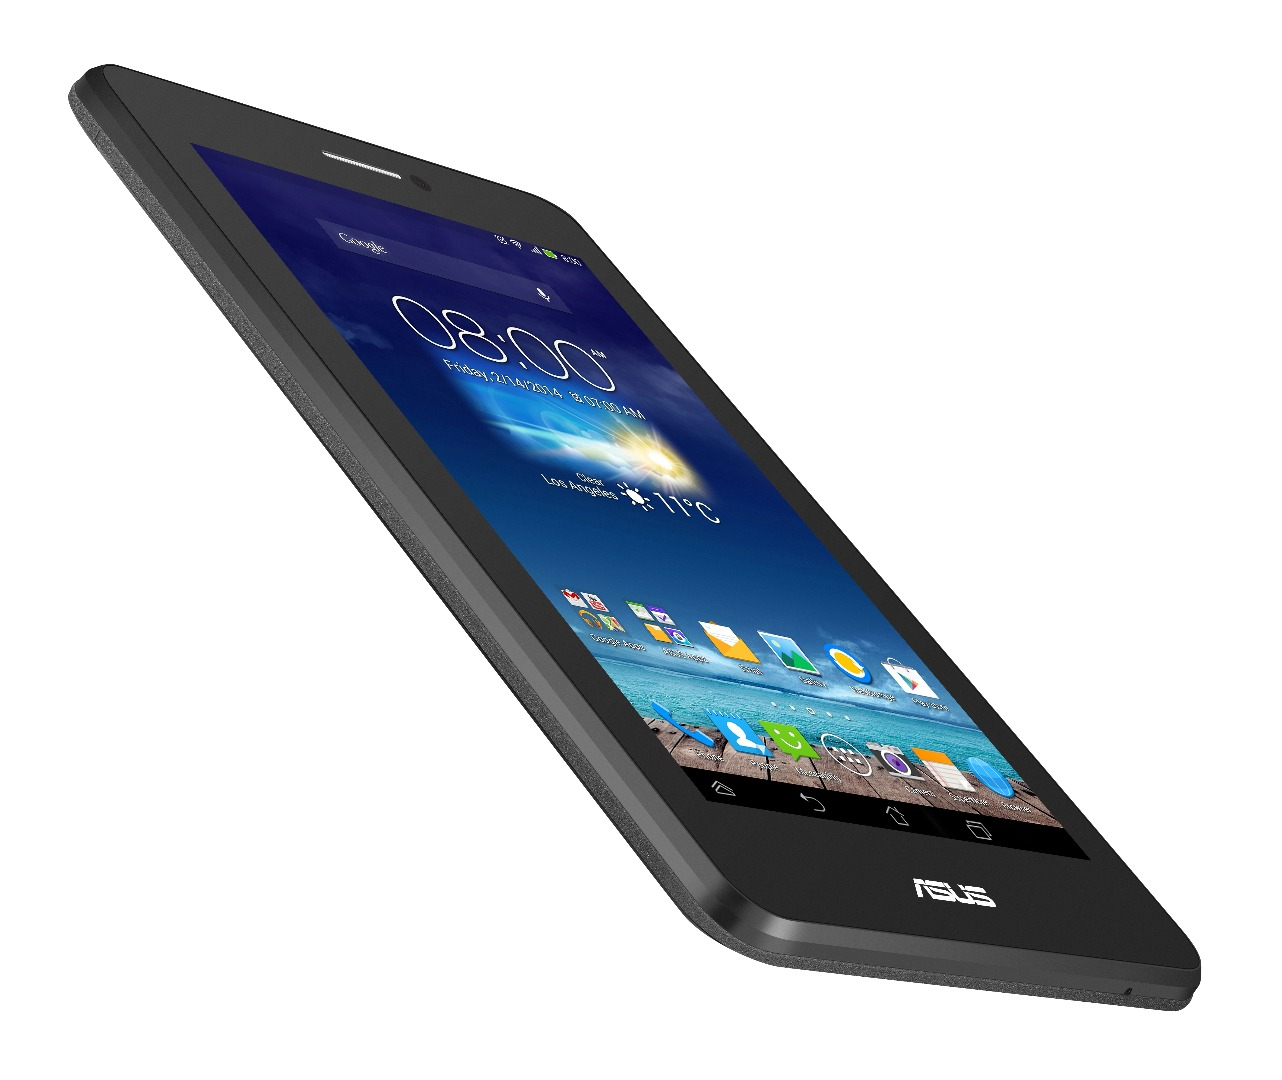 Asus Fonepad 7 two new versions unleashed